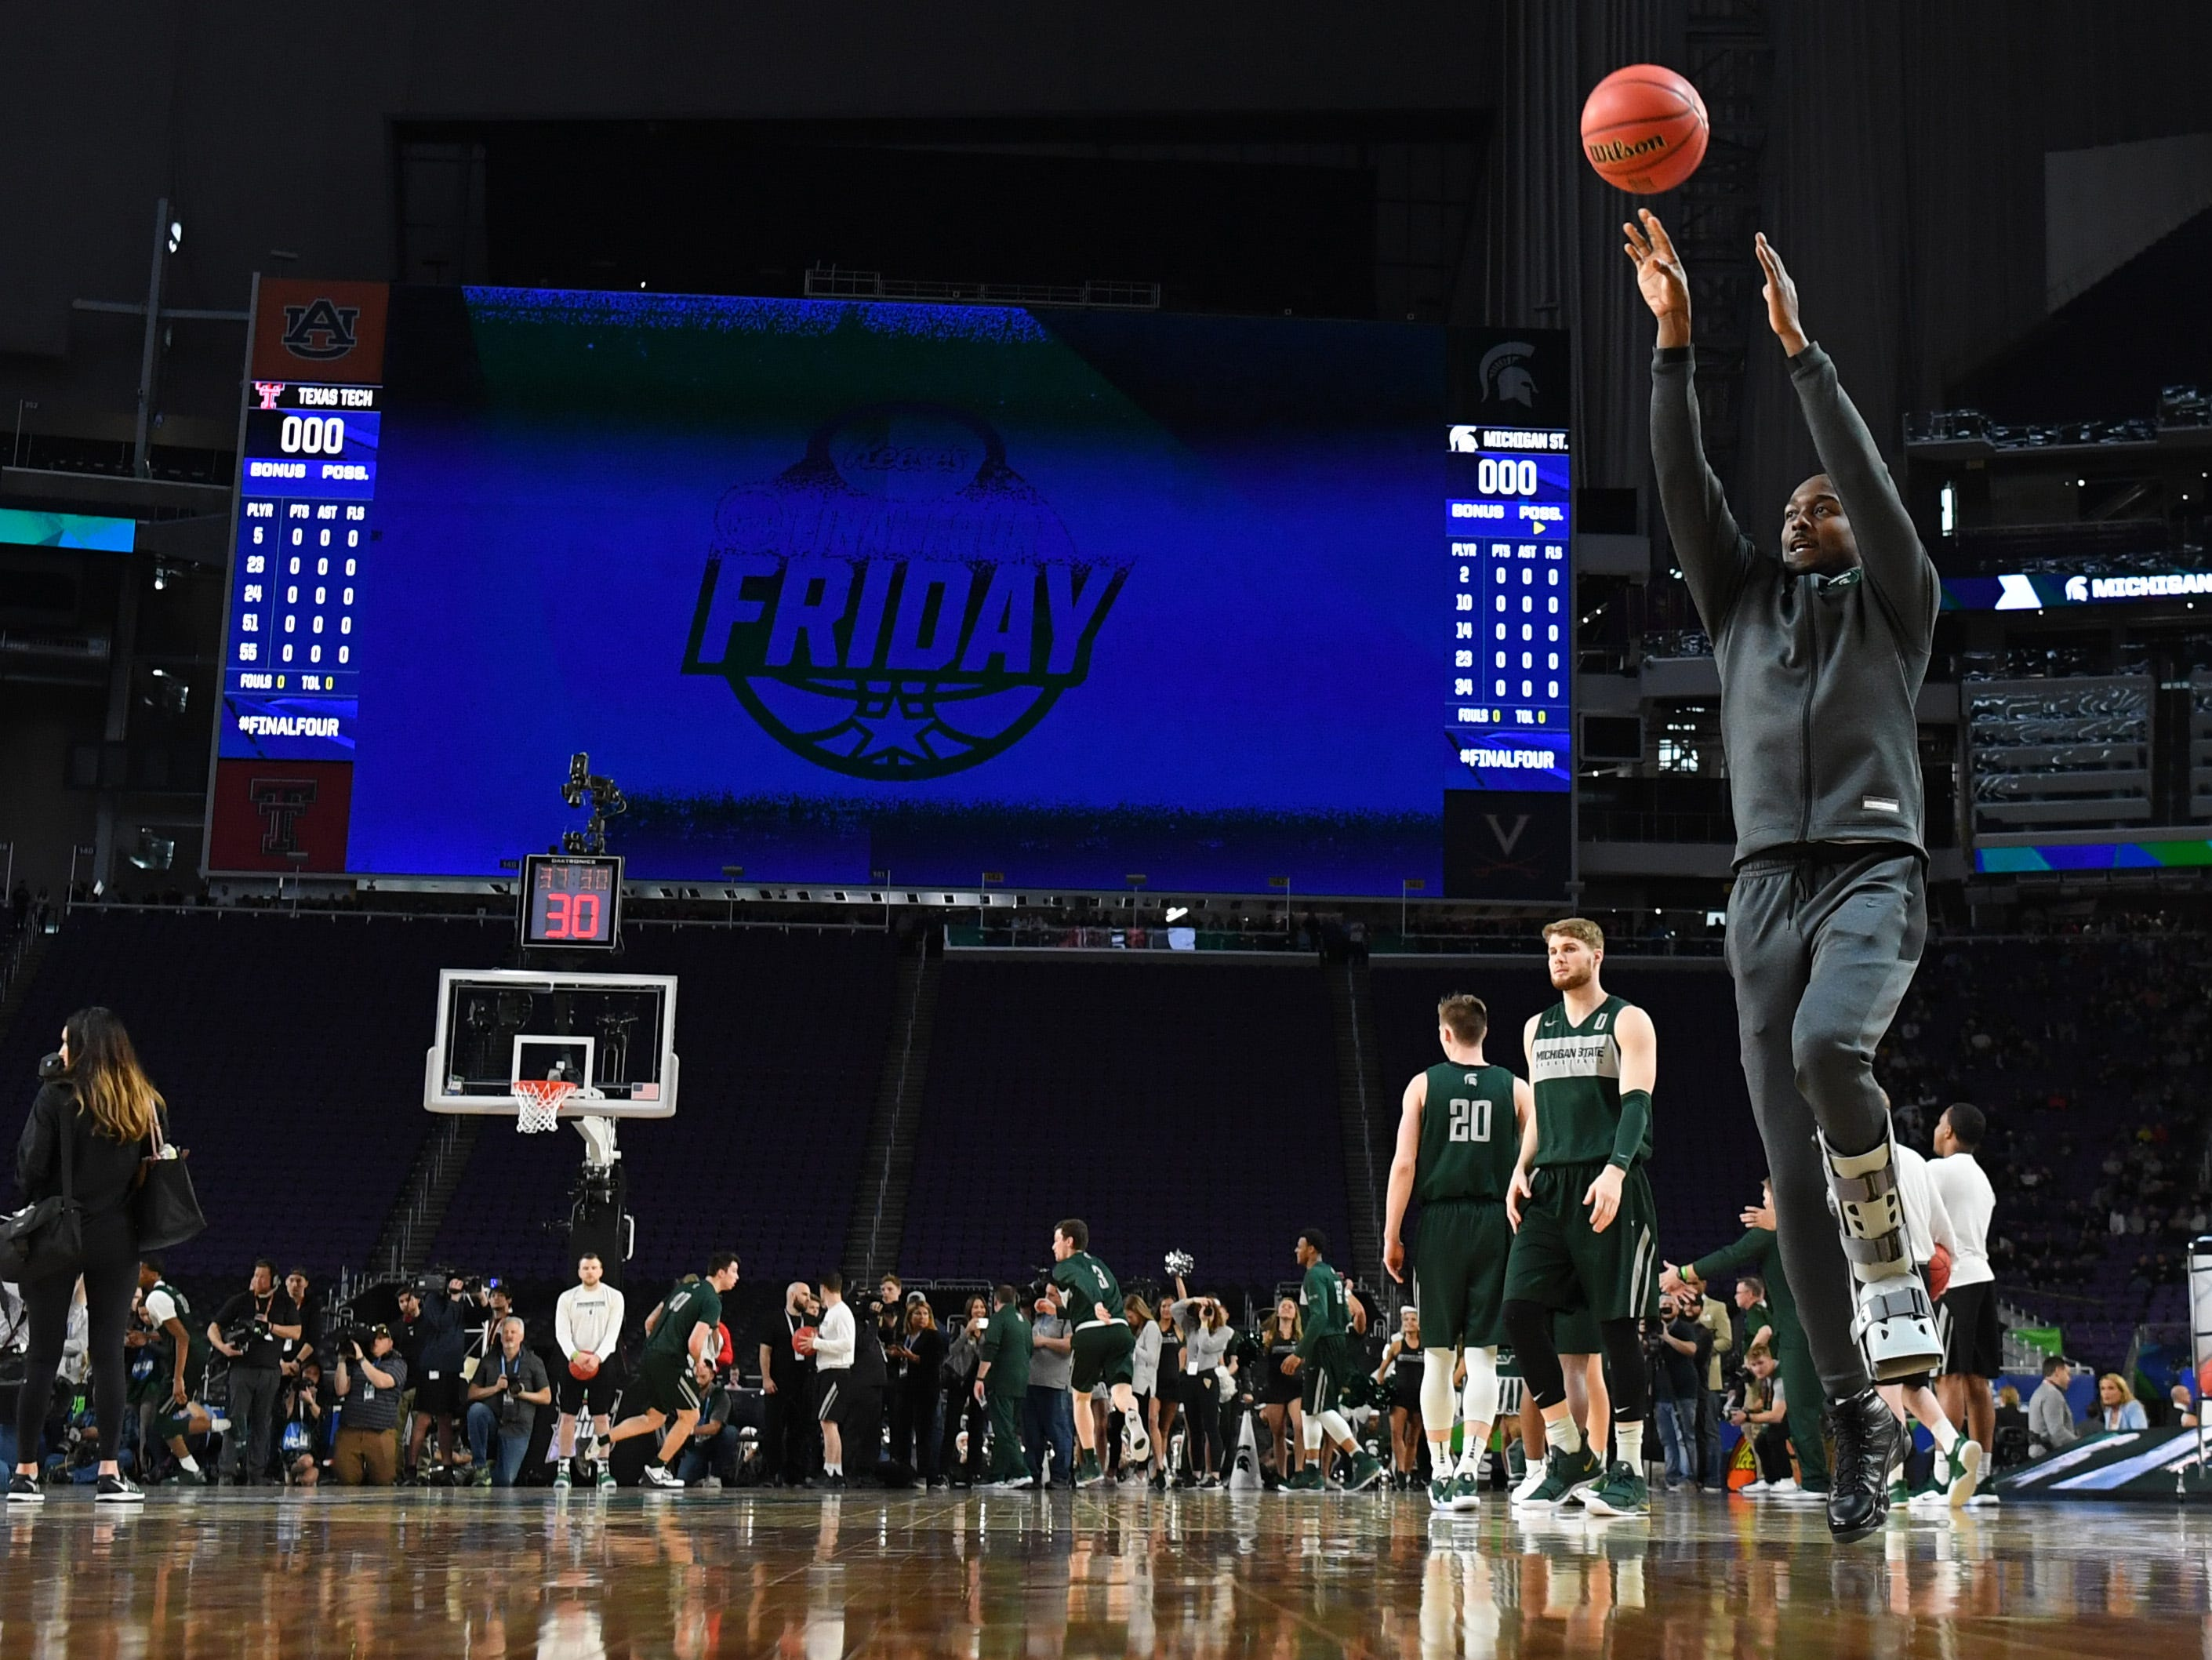 Apr 5, 2019; Minneapolis, MN, USA; Michigan State Spartans injured guard Joshua Langford (1) shooting the ball during practice for the 2019 men's Final Four at US Bank Stadium. Mandatory Credit: Bob Donnan-USA TODAY Sports